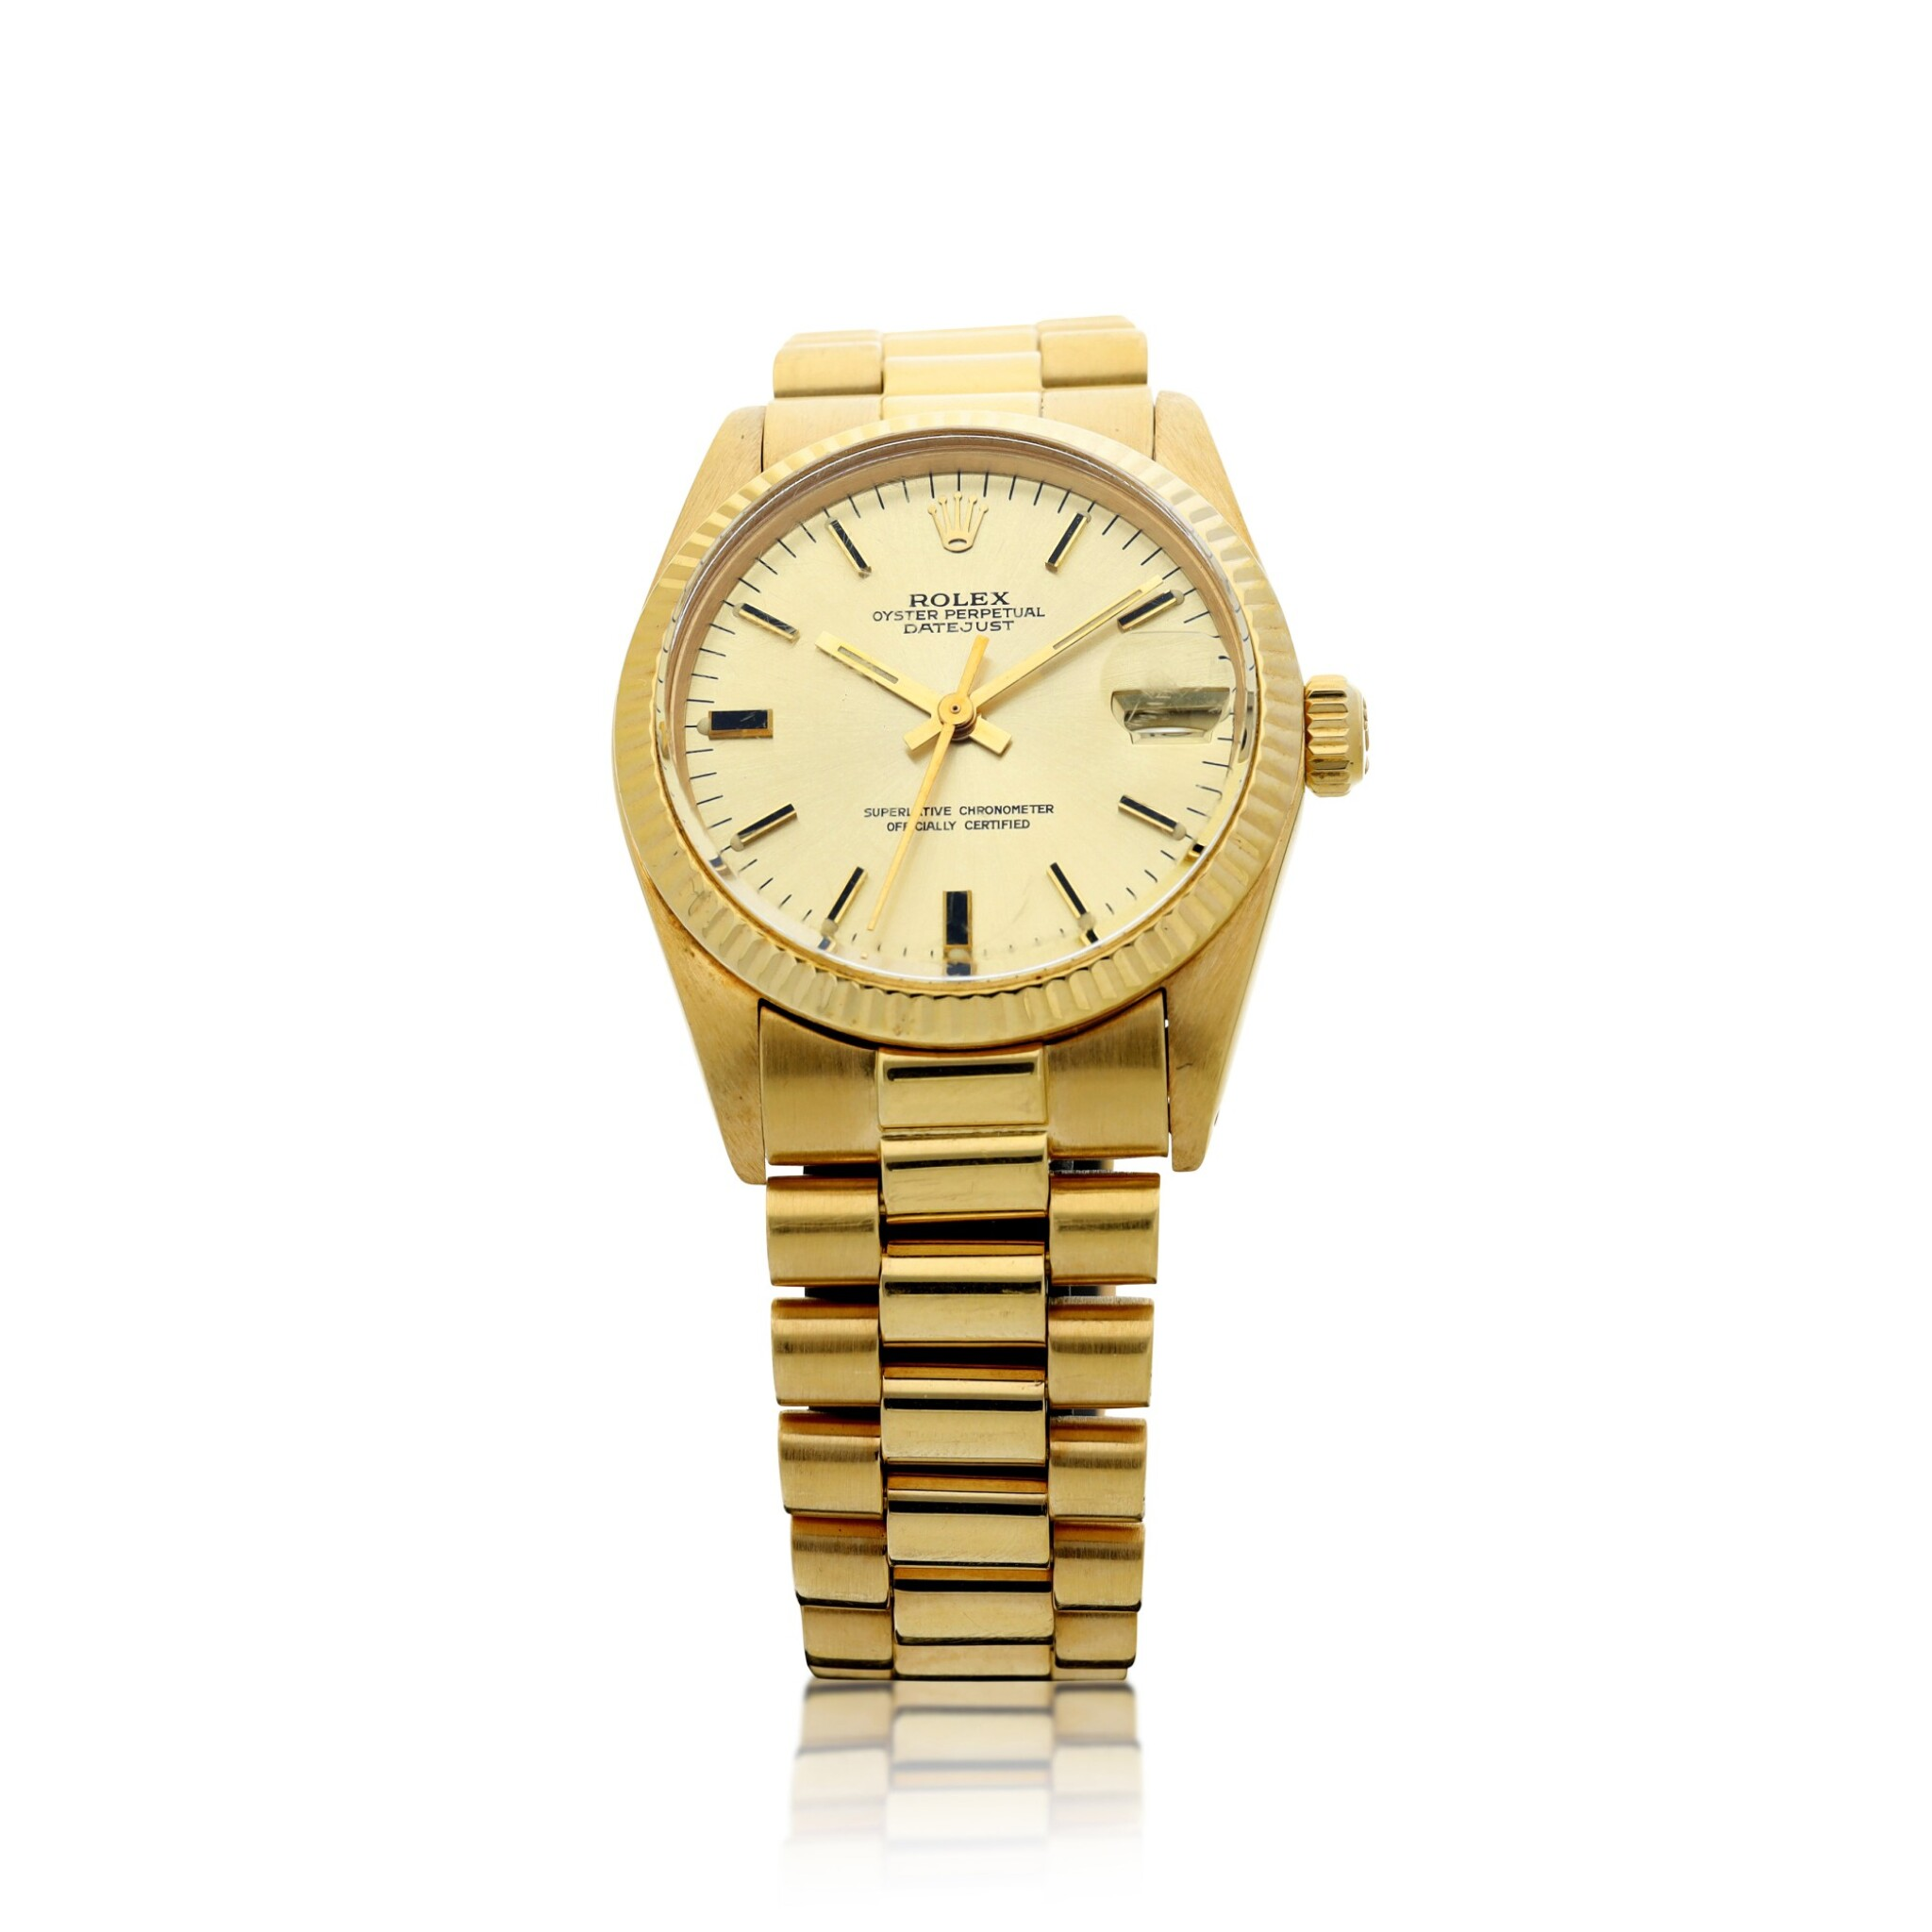 View full screen - View 1 of Lot 81. REFERENCE 6827 DATEJUST A YELLOW GOLD AUTOMATIC WRISTWATCH WITH DATE AND BRACELET, CIRCA 1979.